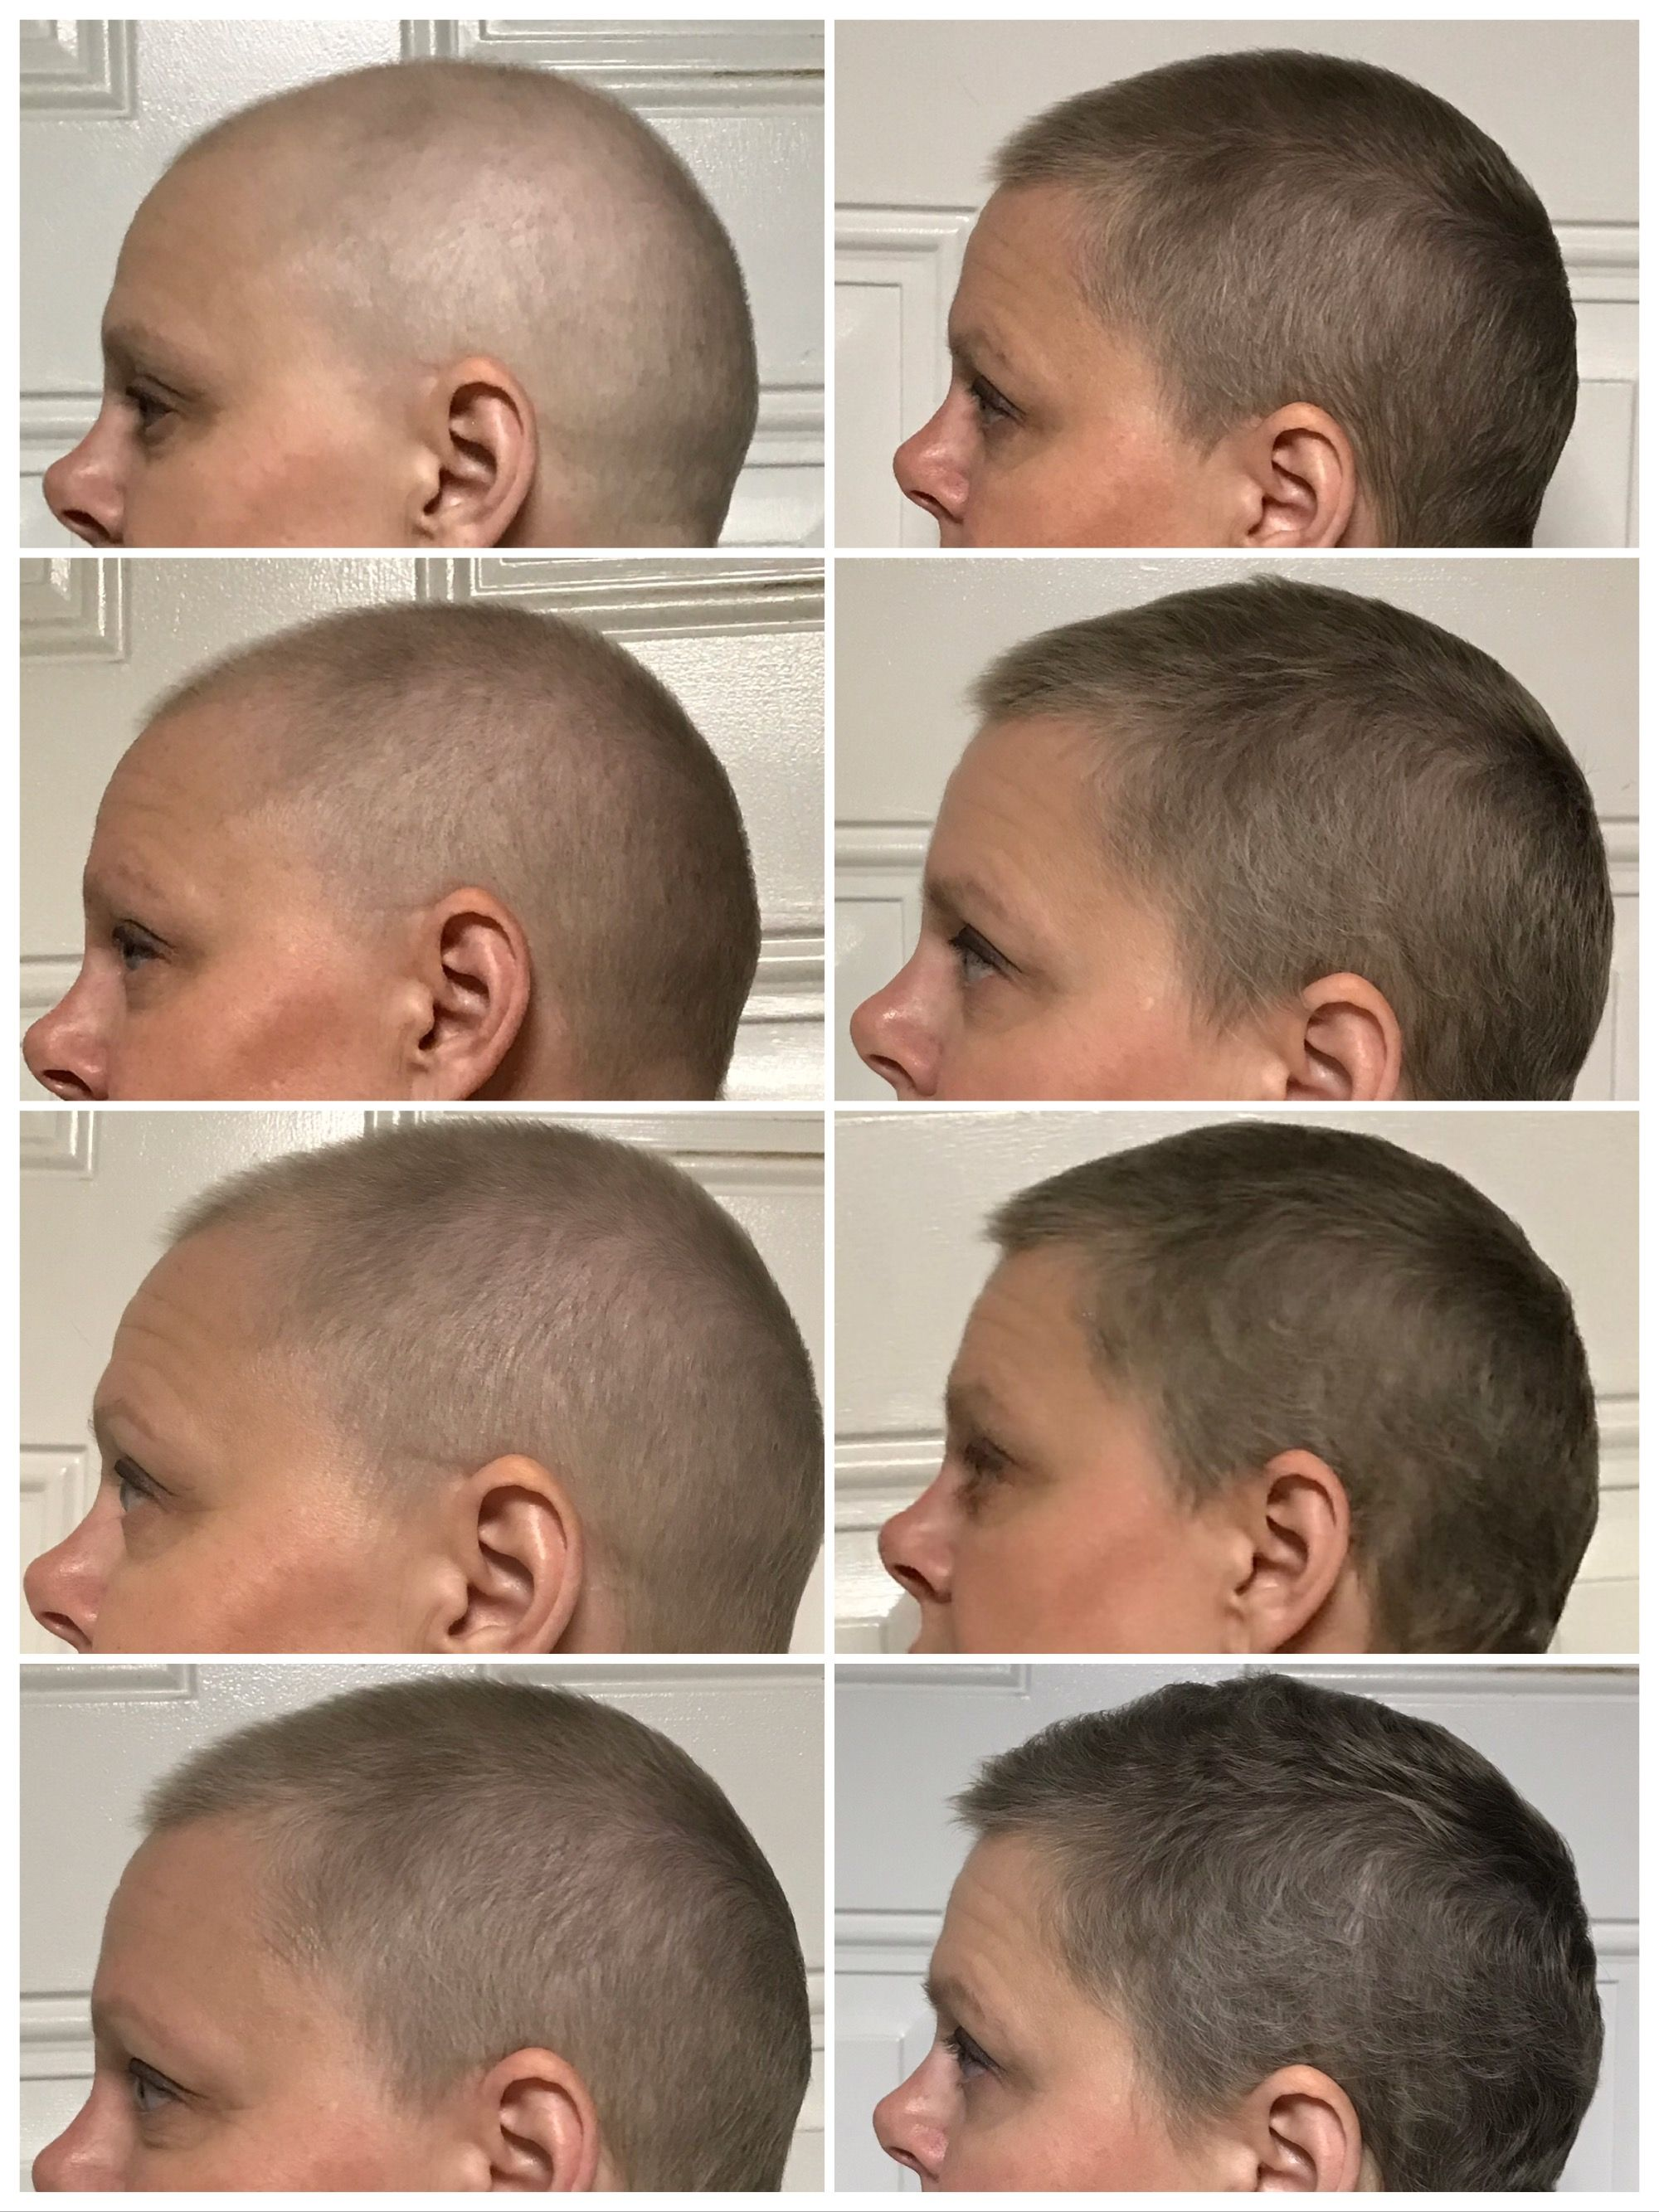 After chemo hair growth. Weeks 3-3  Chemo hair, Hair growth after